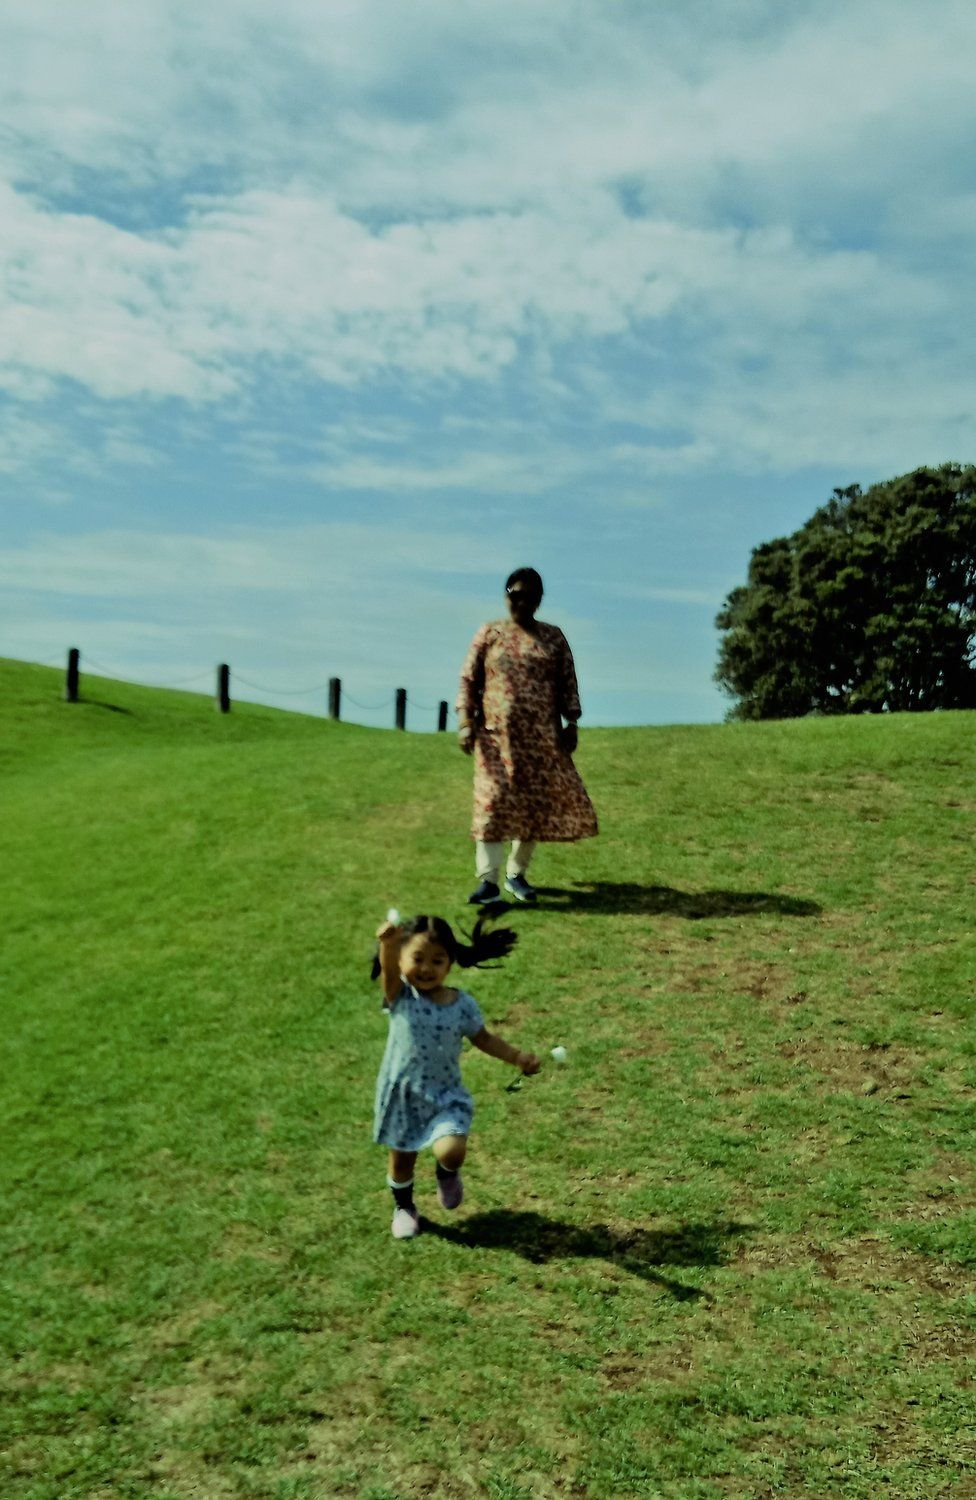 A young girl runs in front of her grandmother in a field